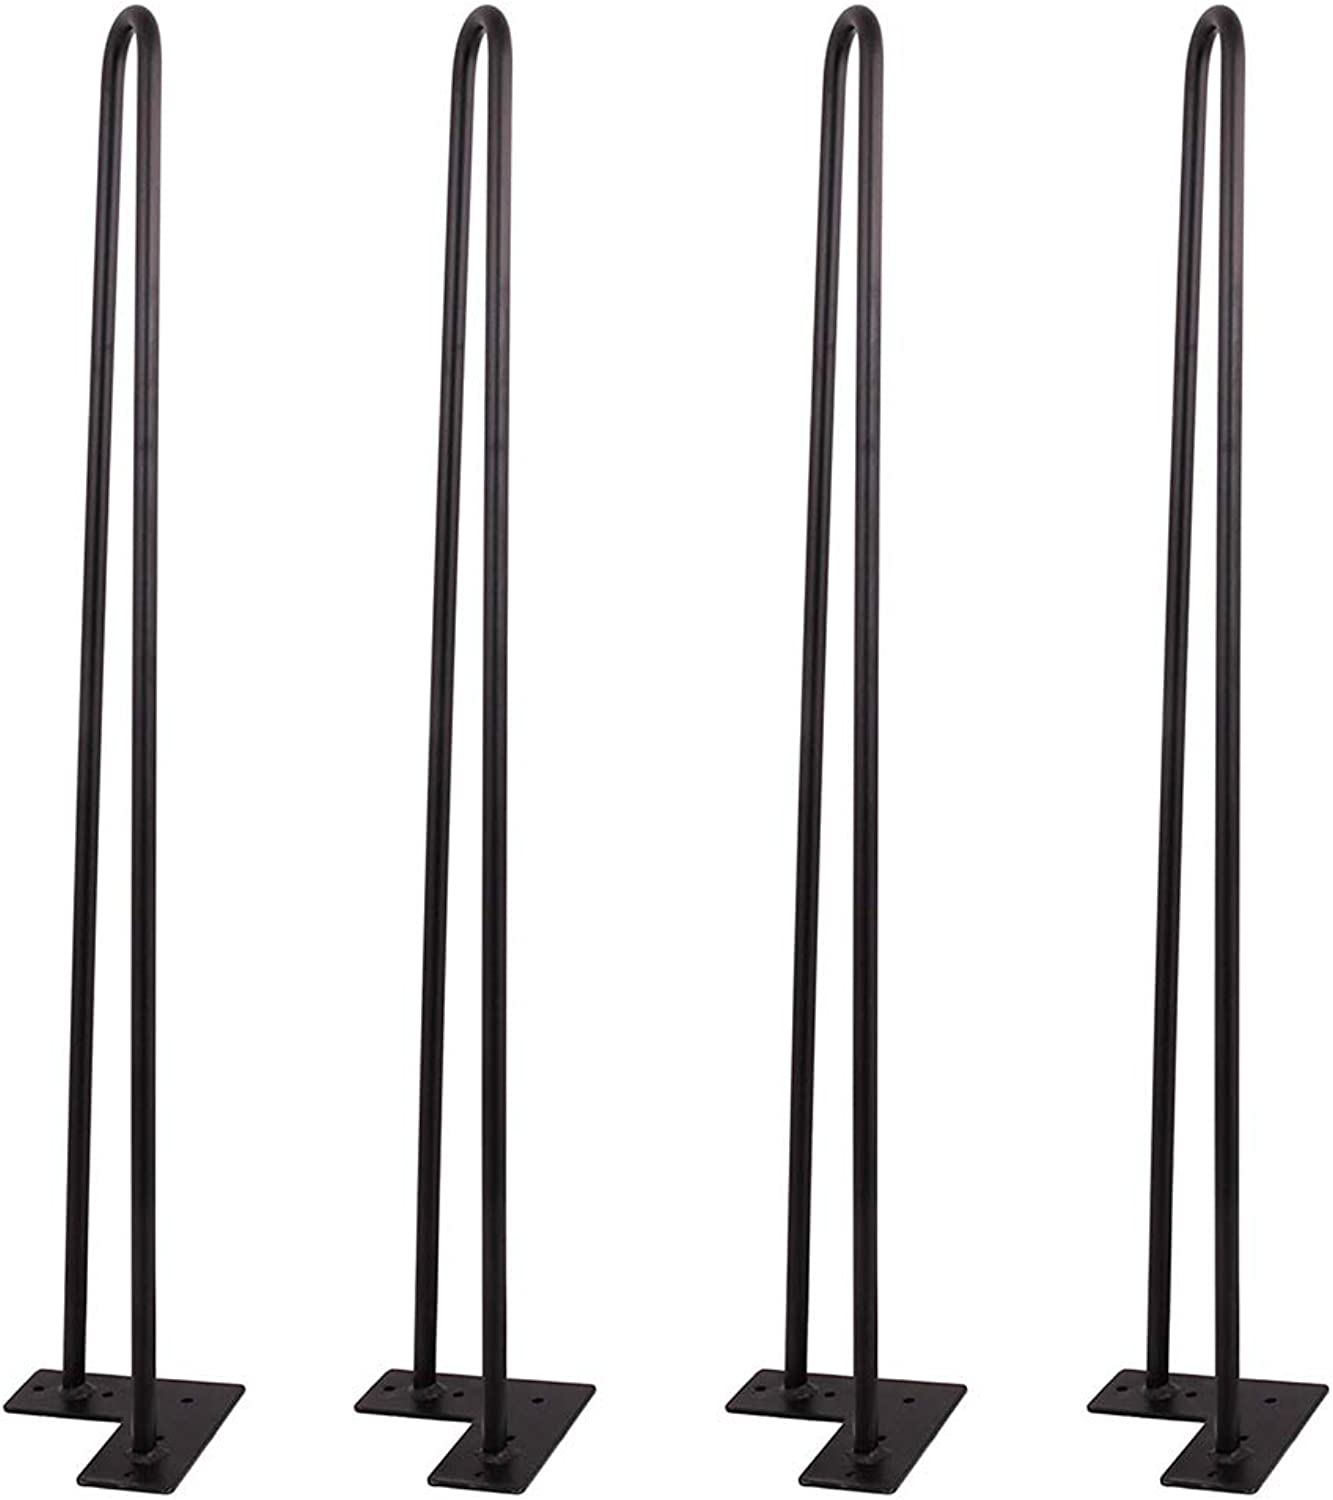 Penck 28 Inch Hairpin Legs - 4 Easy to Install Metal Legs for Furniture - Mid Century Modern Legs for Dining and End Tables, Chairs, Home DIY Projects